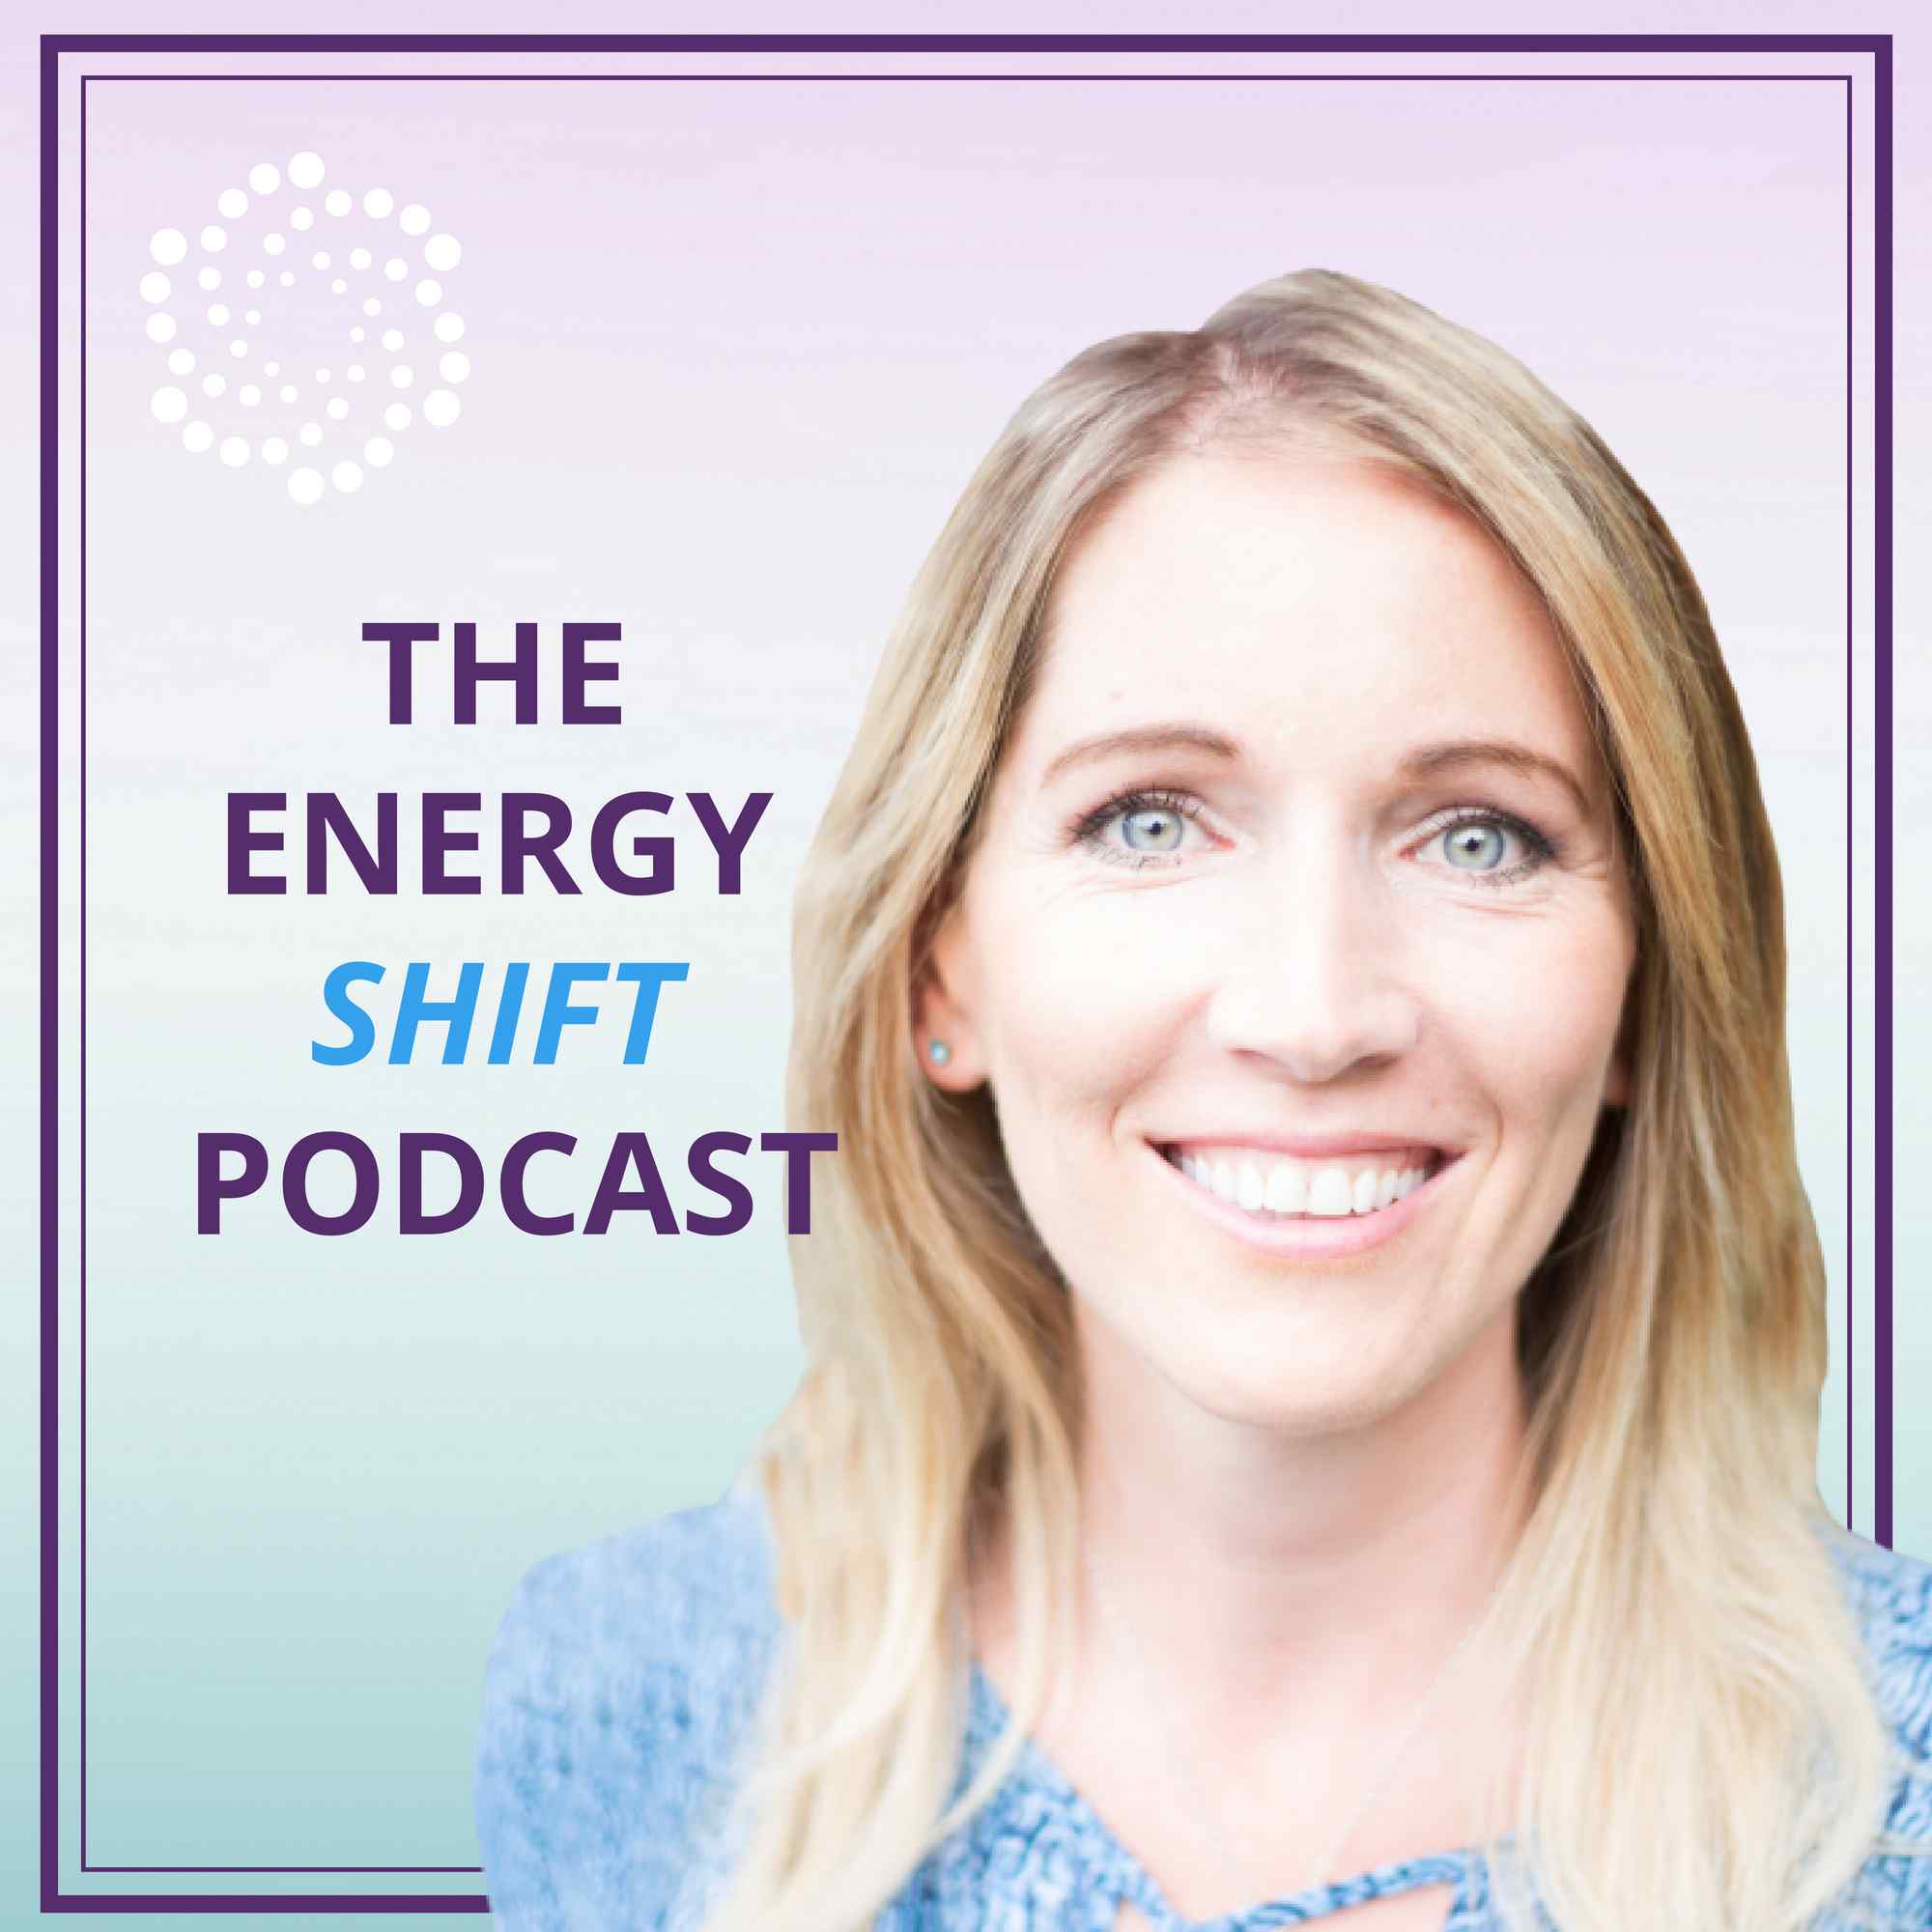 The Energy Shift Podcast